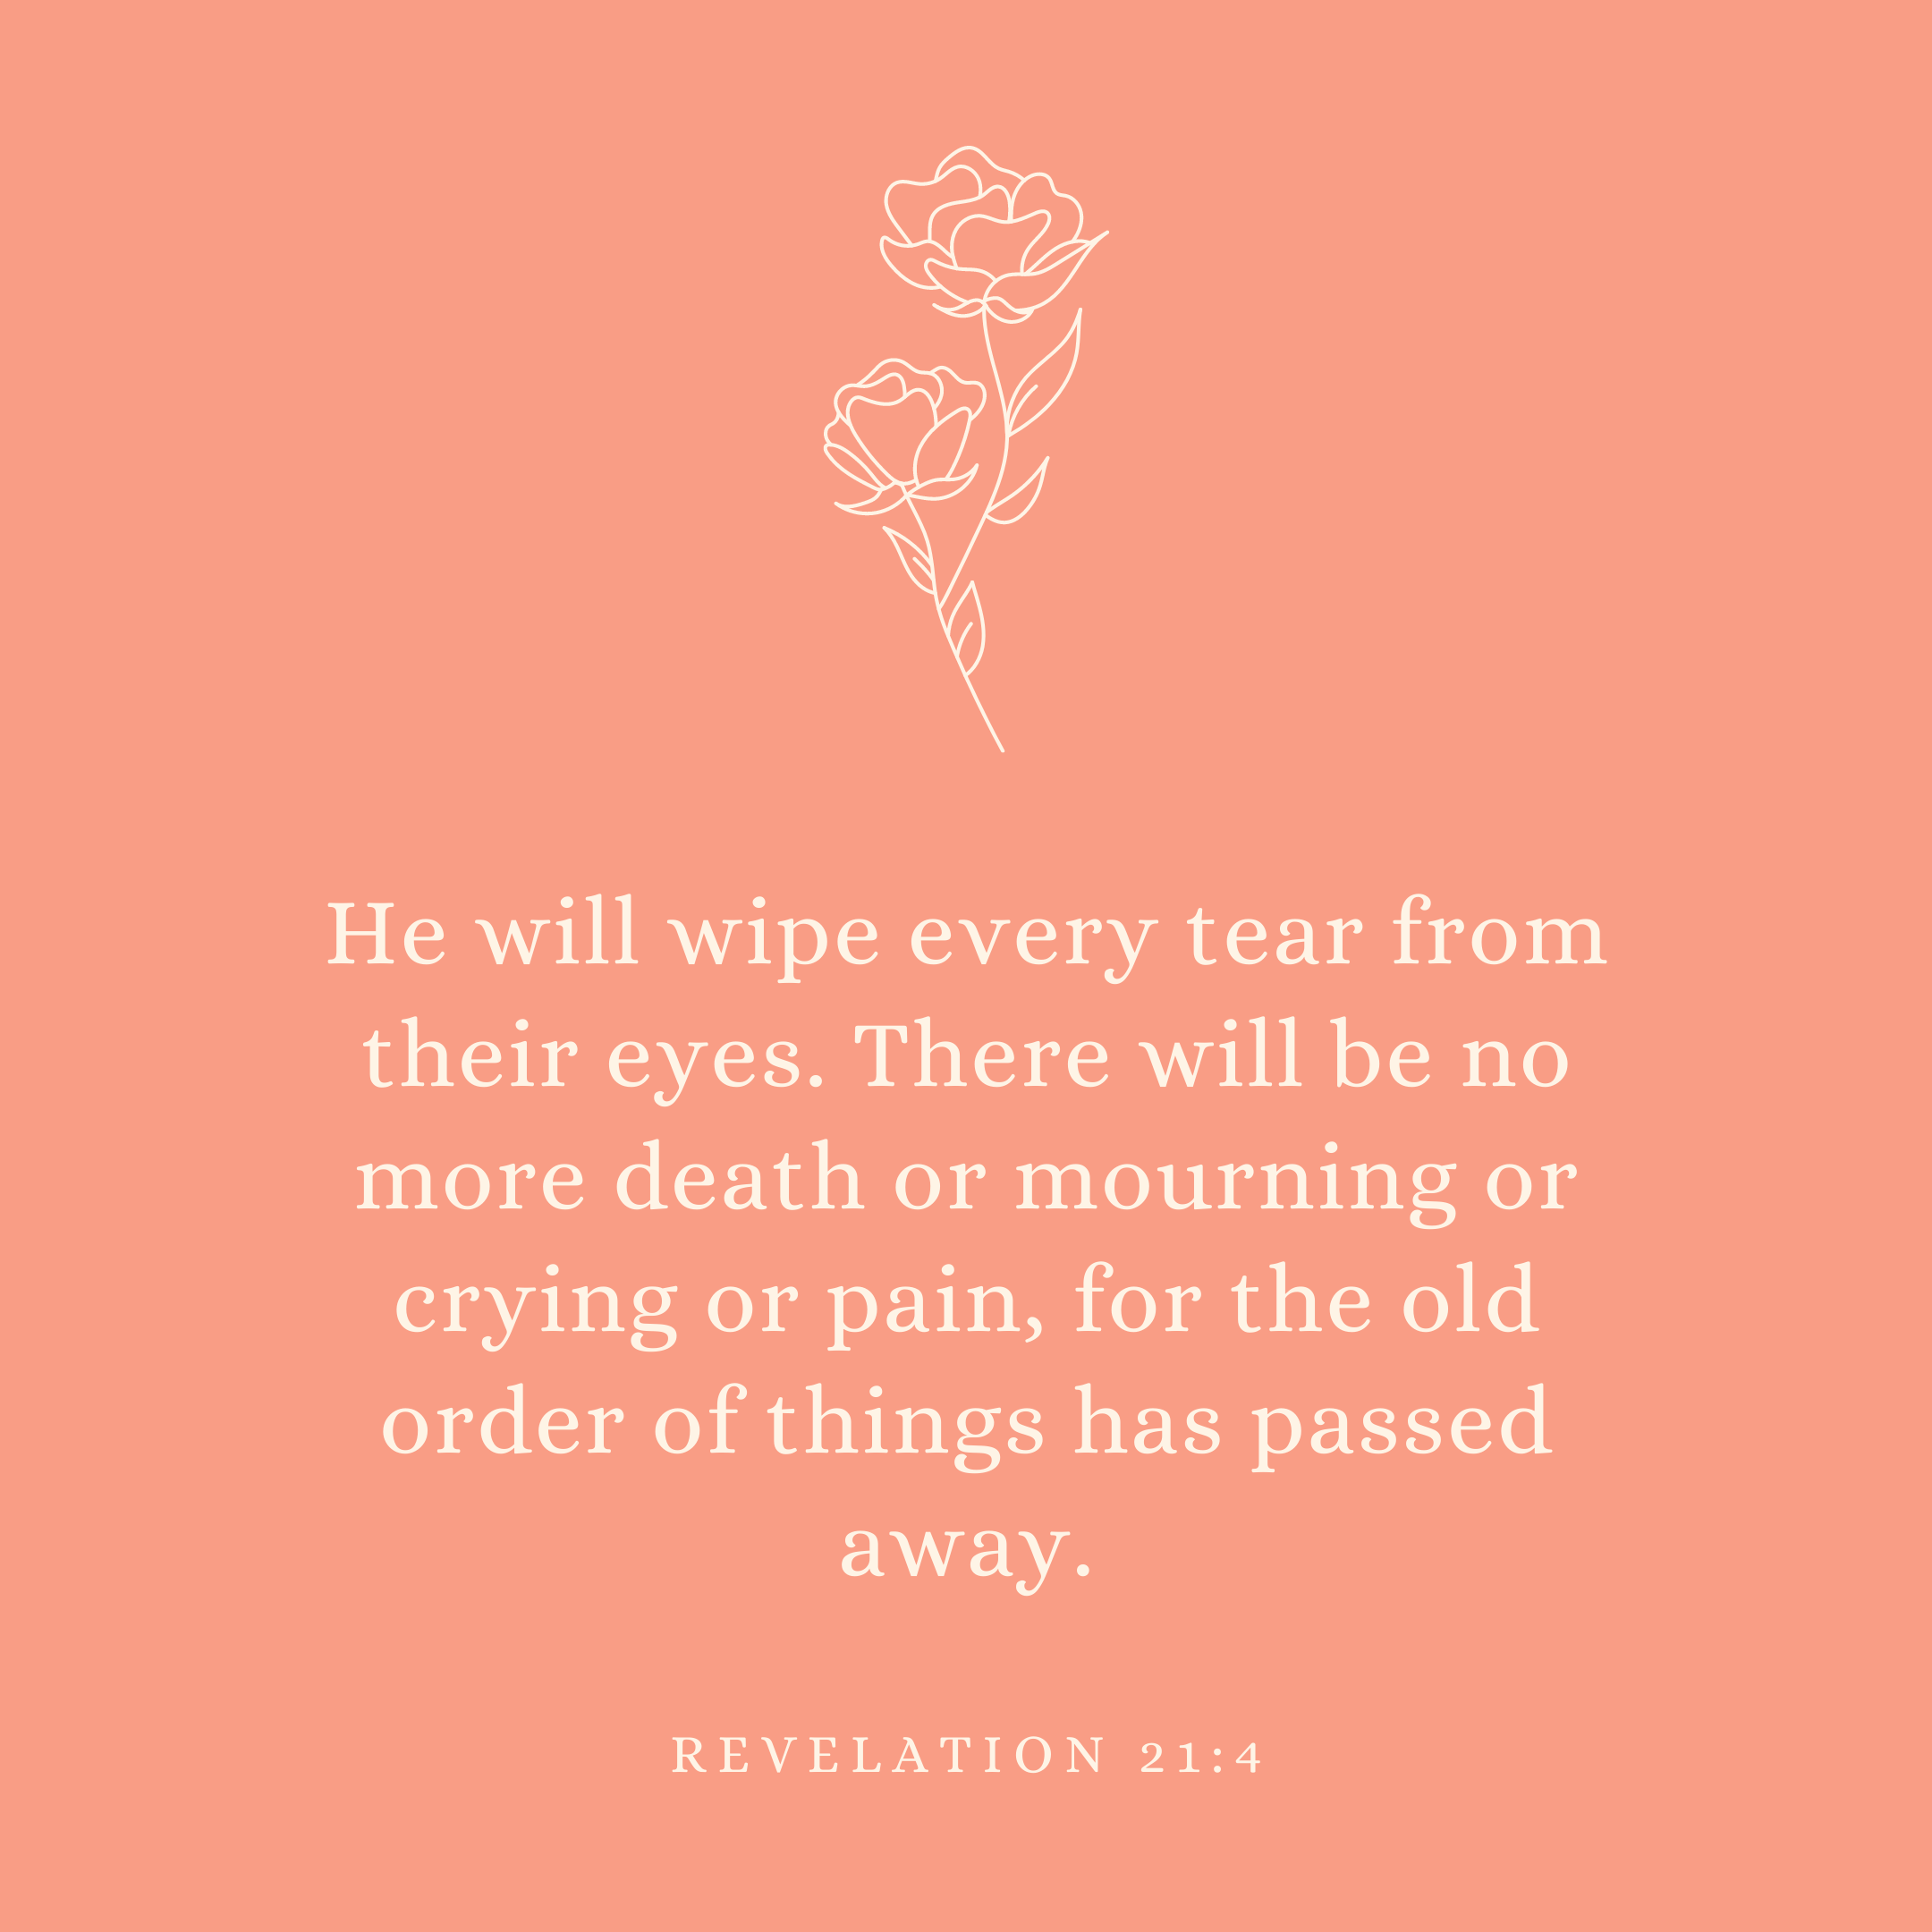 Revelation 21:4 He will wipe every tear from their eyes. There will be no more death or mourning or crying or pain, for the old order of things has passed away.